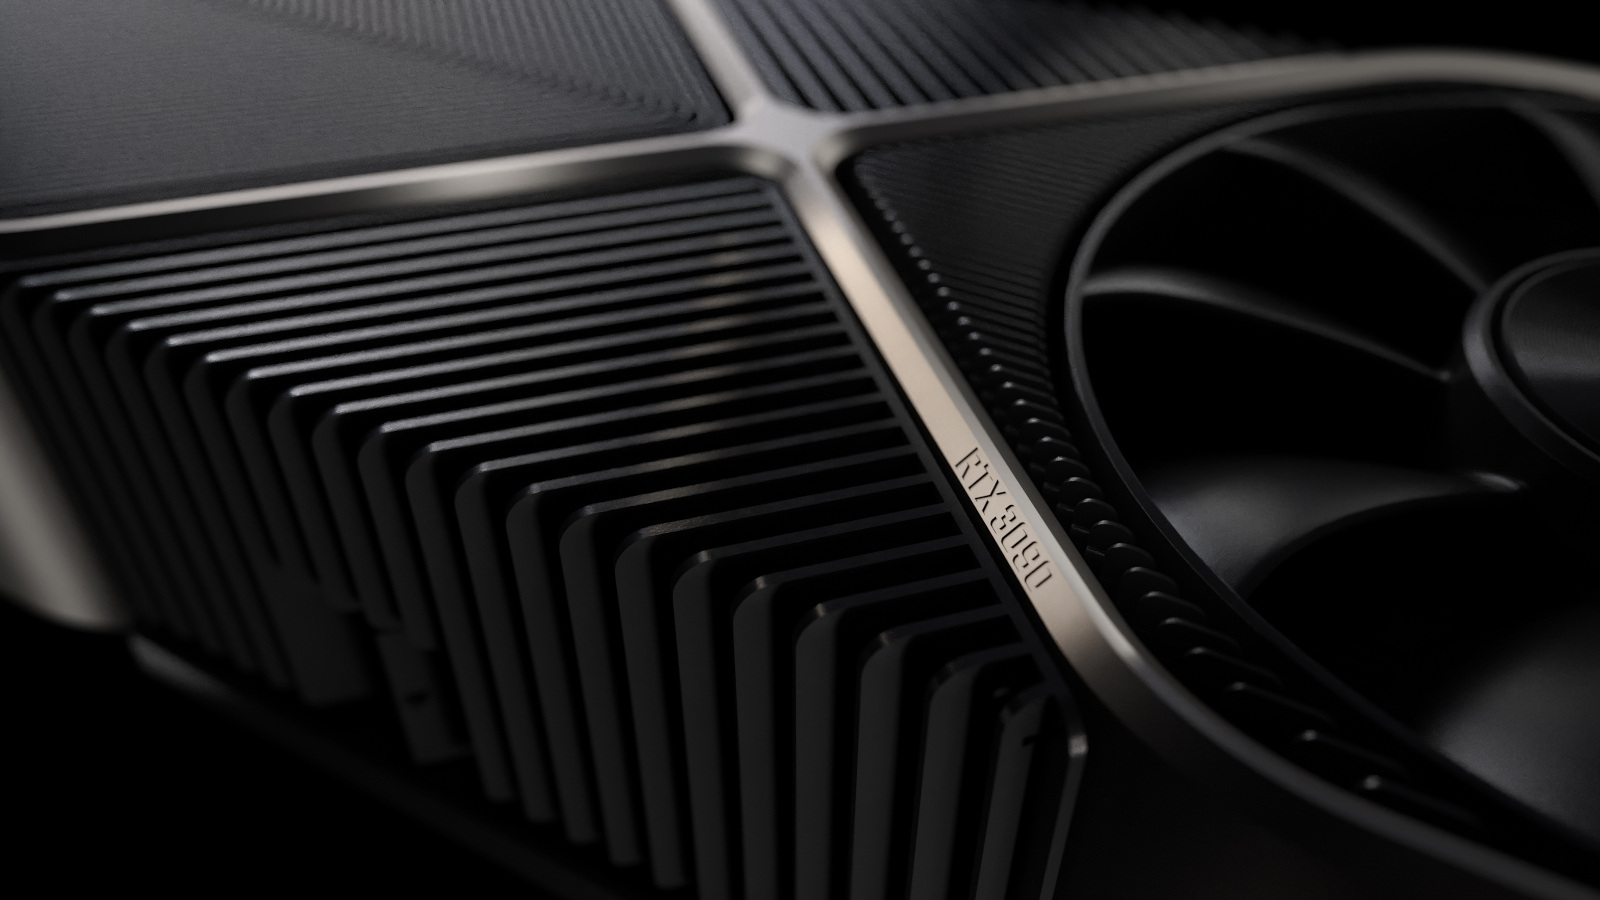 NVIDIA CEO says RTX 3080 and 3090 supply shortage will last throughout 2020 | DeviceDaily.com